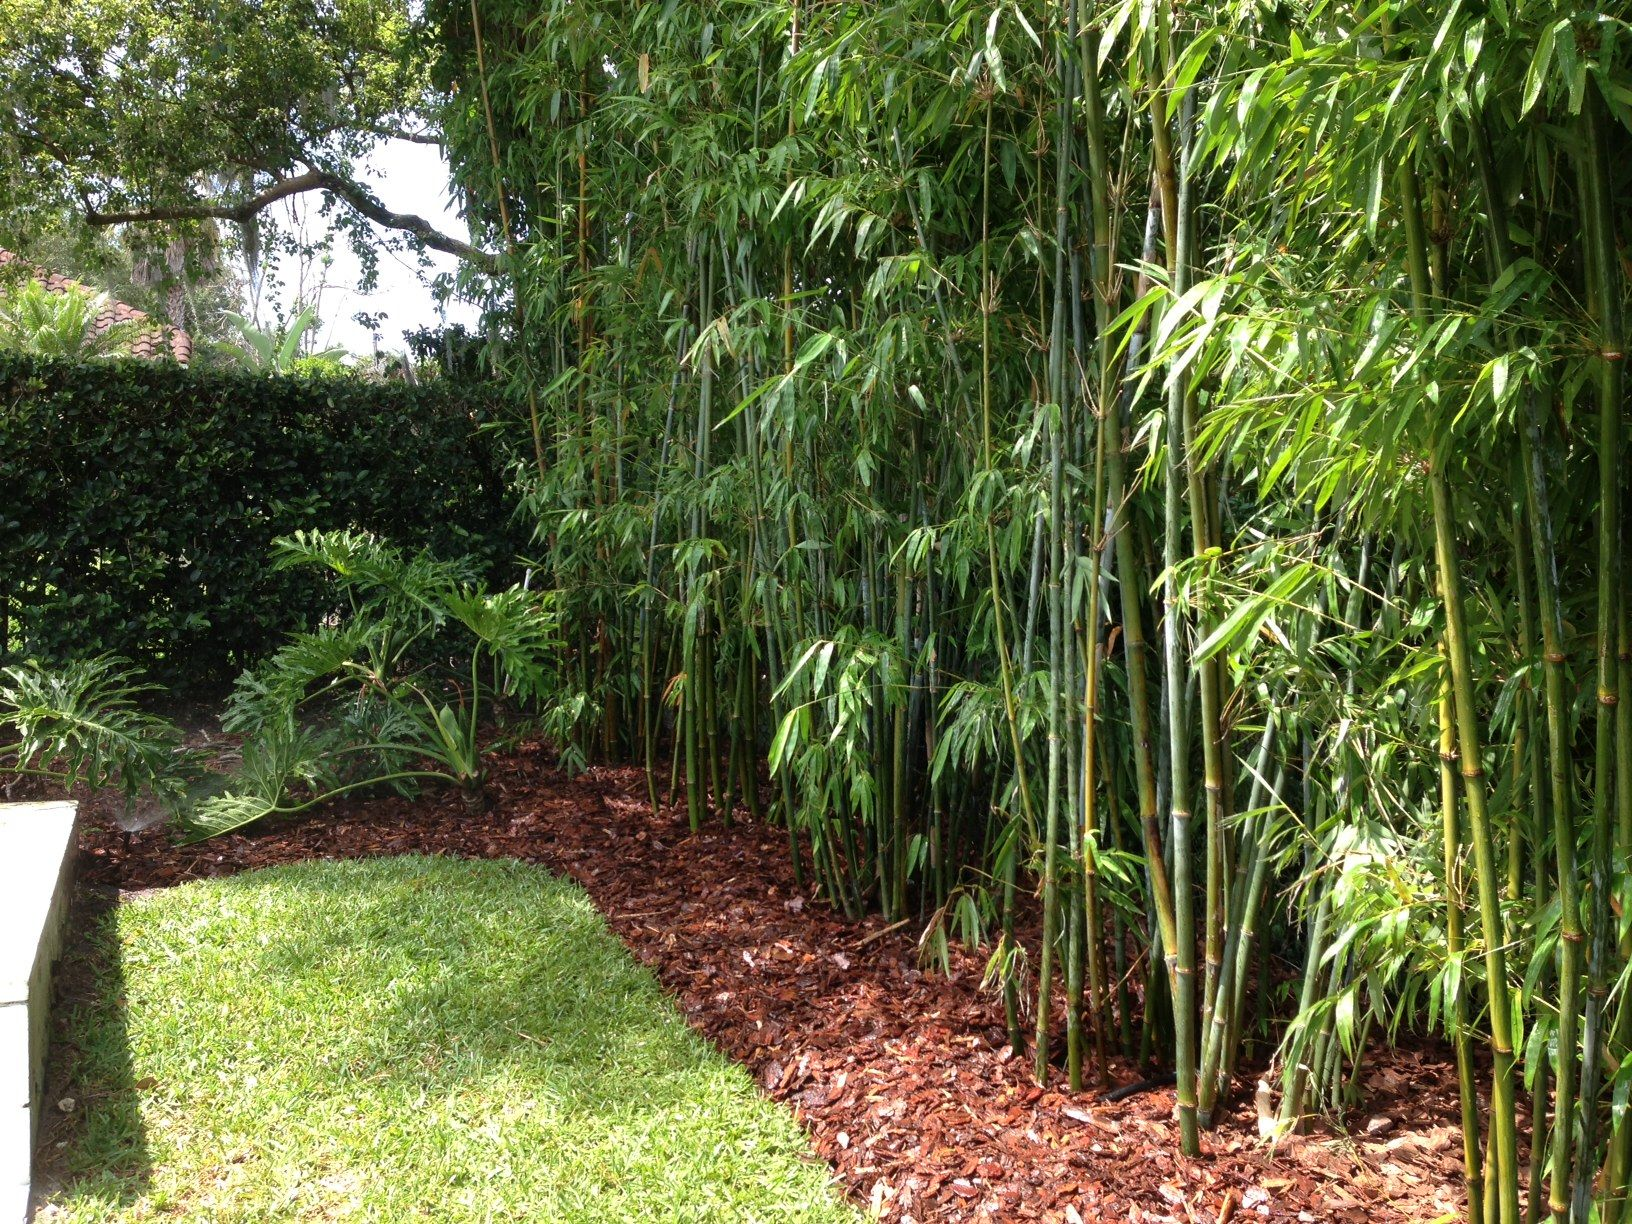 Landscape design bamboo irrigation design blg for Garden design ideas with hedges